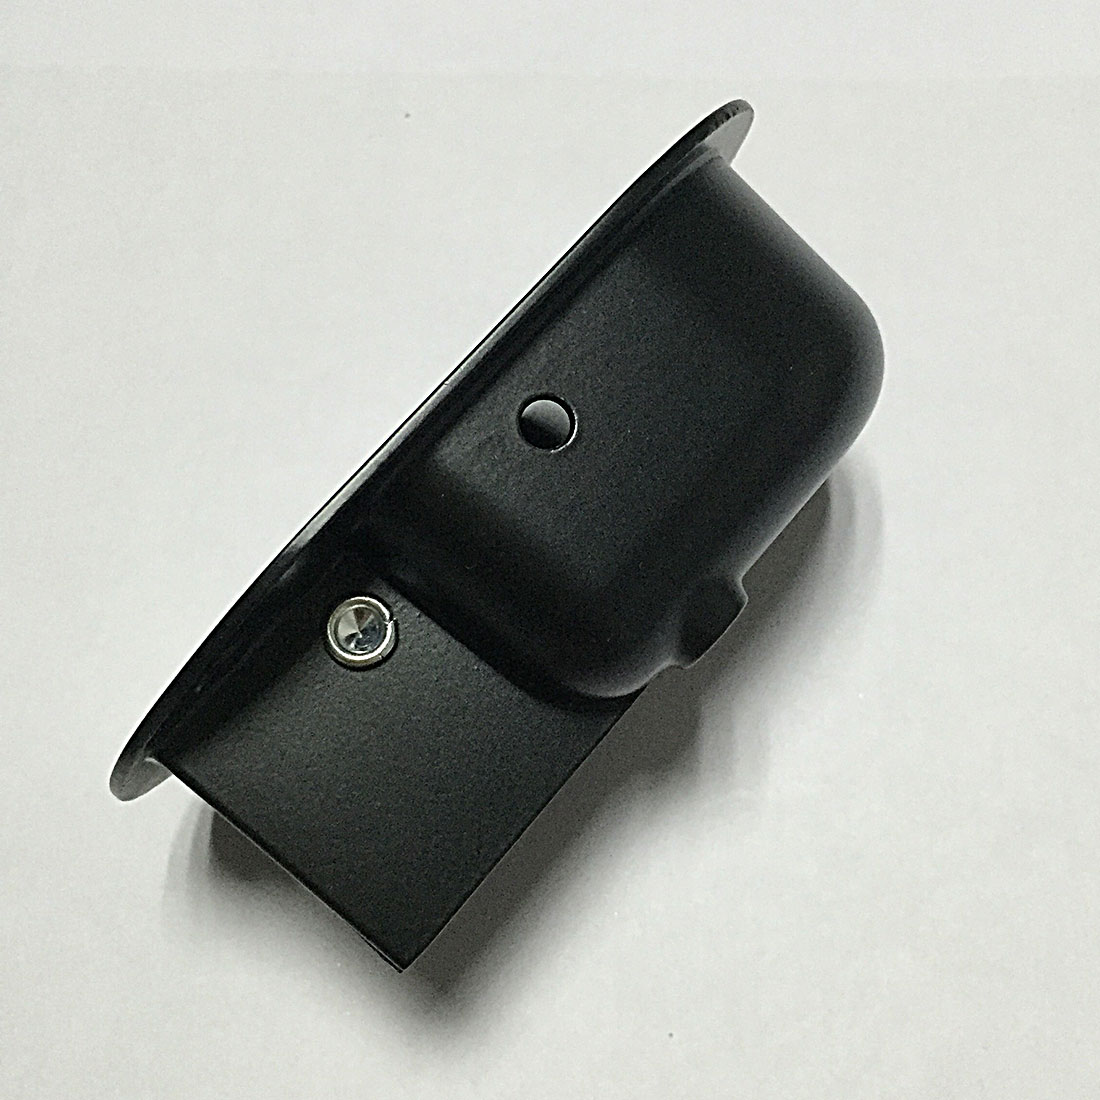 Hot!Black Durable Metal Handle Recliner Chair Sofa Couch Release Lever Replacement Economic 11.2x6.5x3.7cm